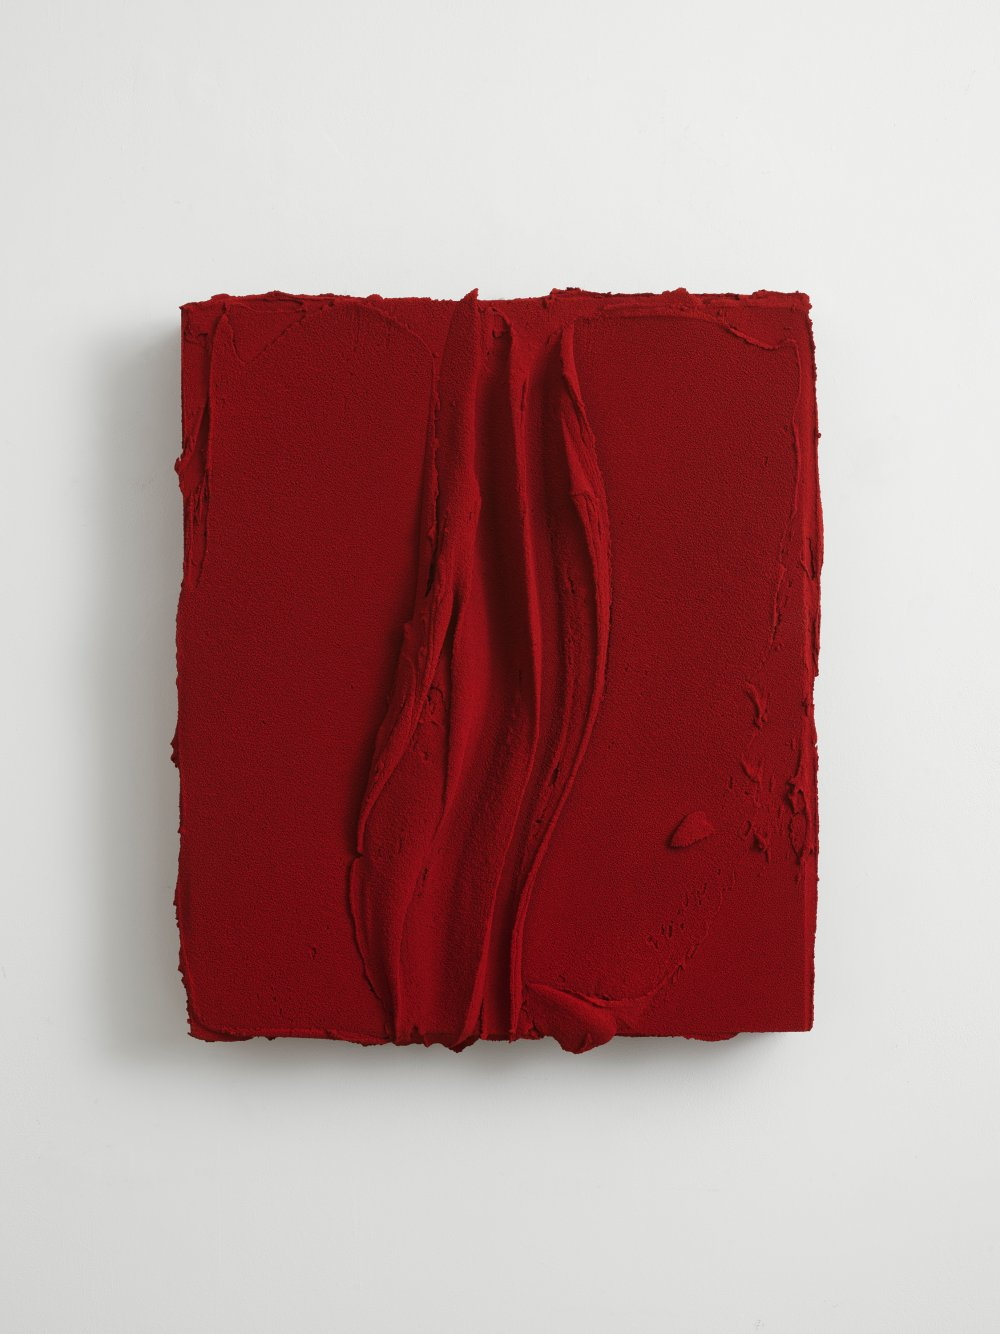 Untitled (Permanent red)